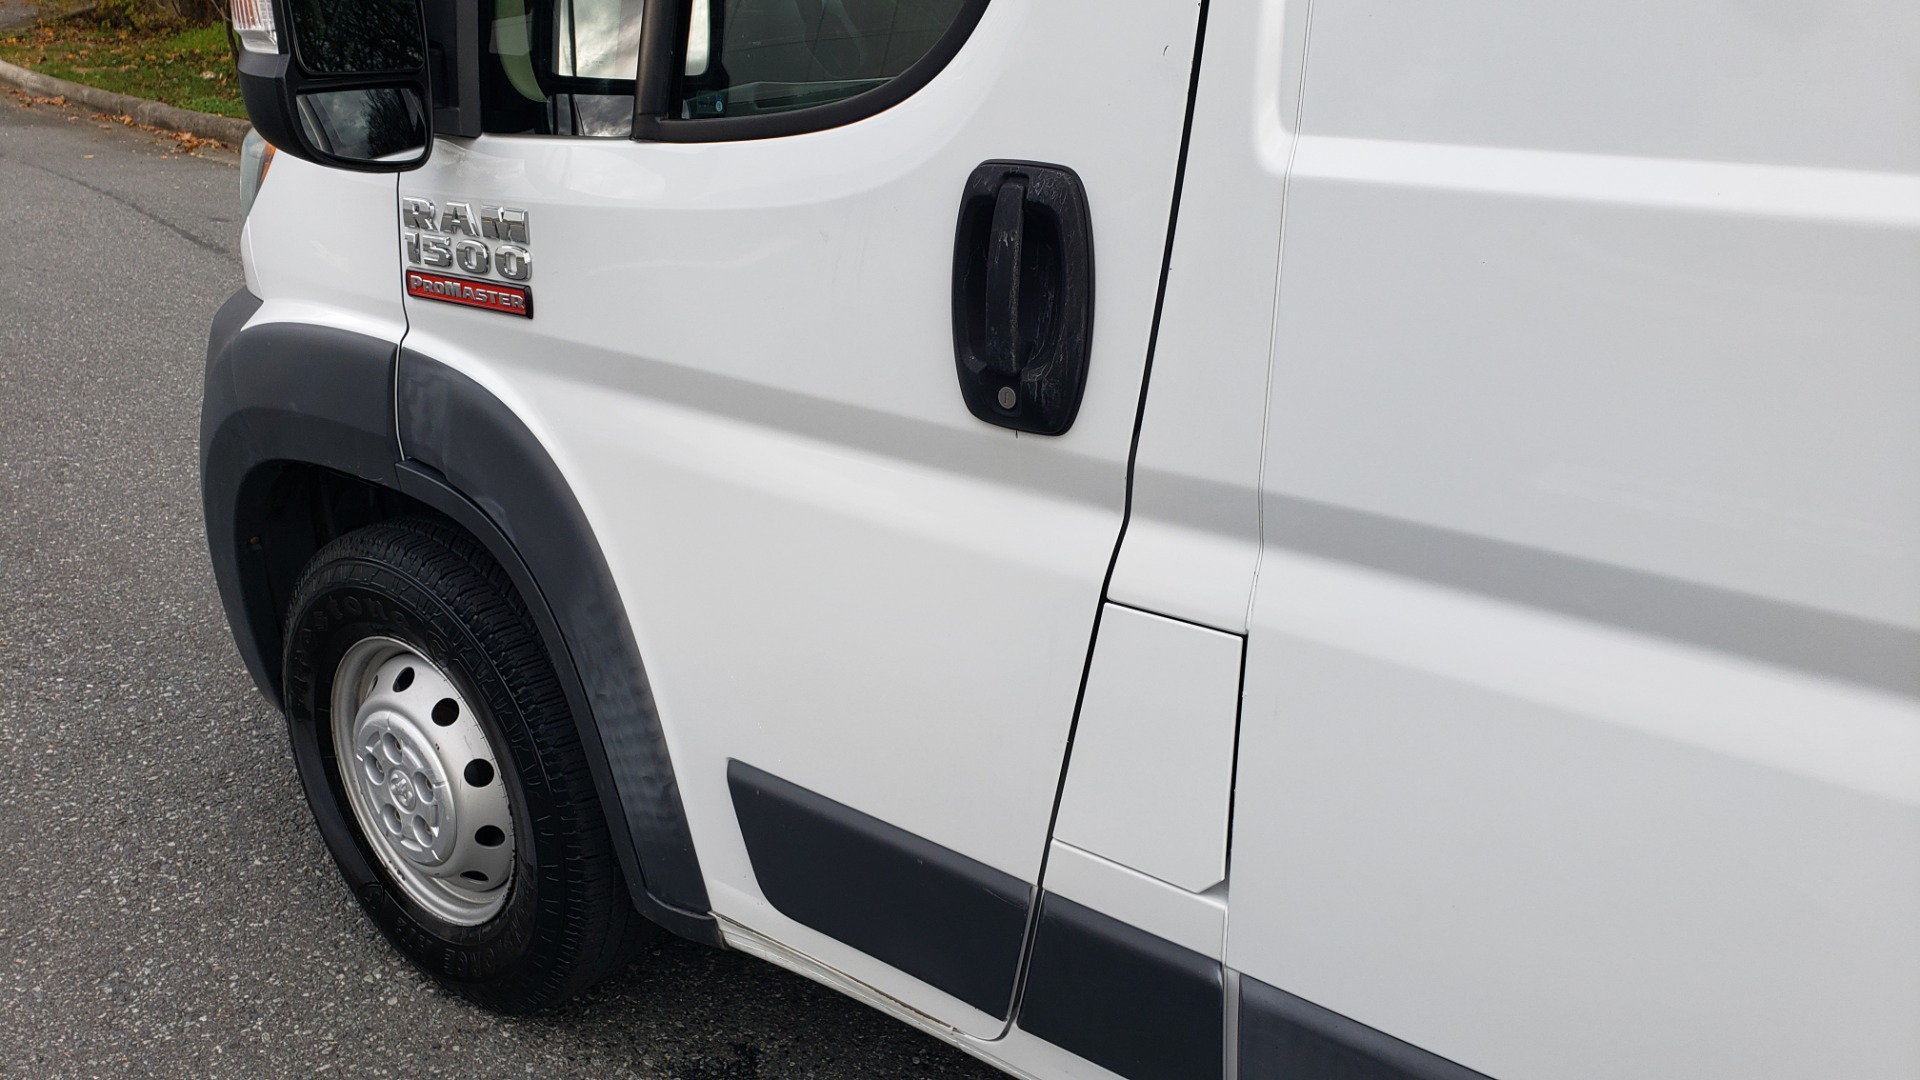 Used 2015 Ram PROMASTER CARGO VAN 136-INCH WB / LOW ROOF / LADDER RACK / INSIDE RACKS for sale Sold at Formula Imports in Charlotte NC 28227 7